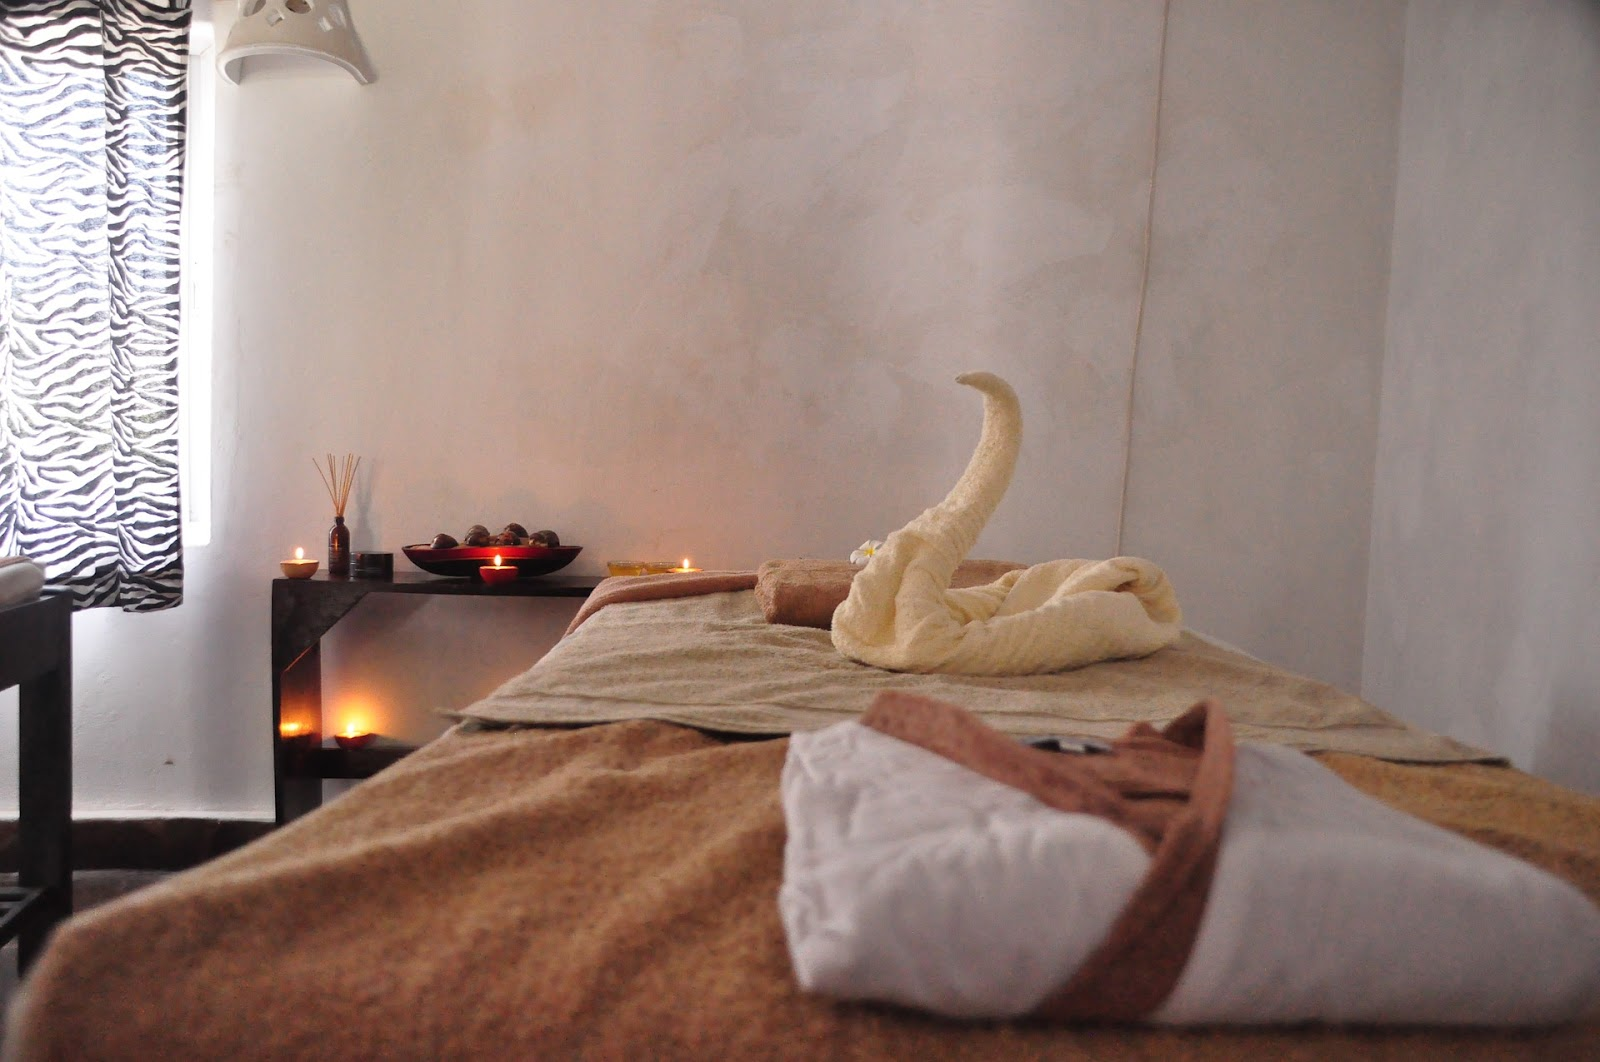 spa experience at home, self care at home, self care tips, content writing, spa day at home tips